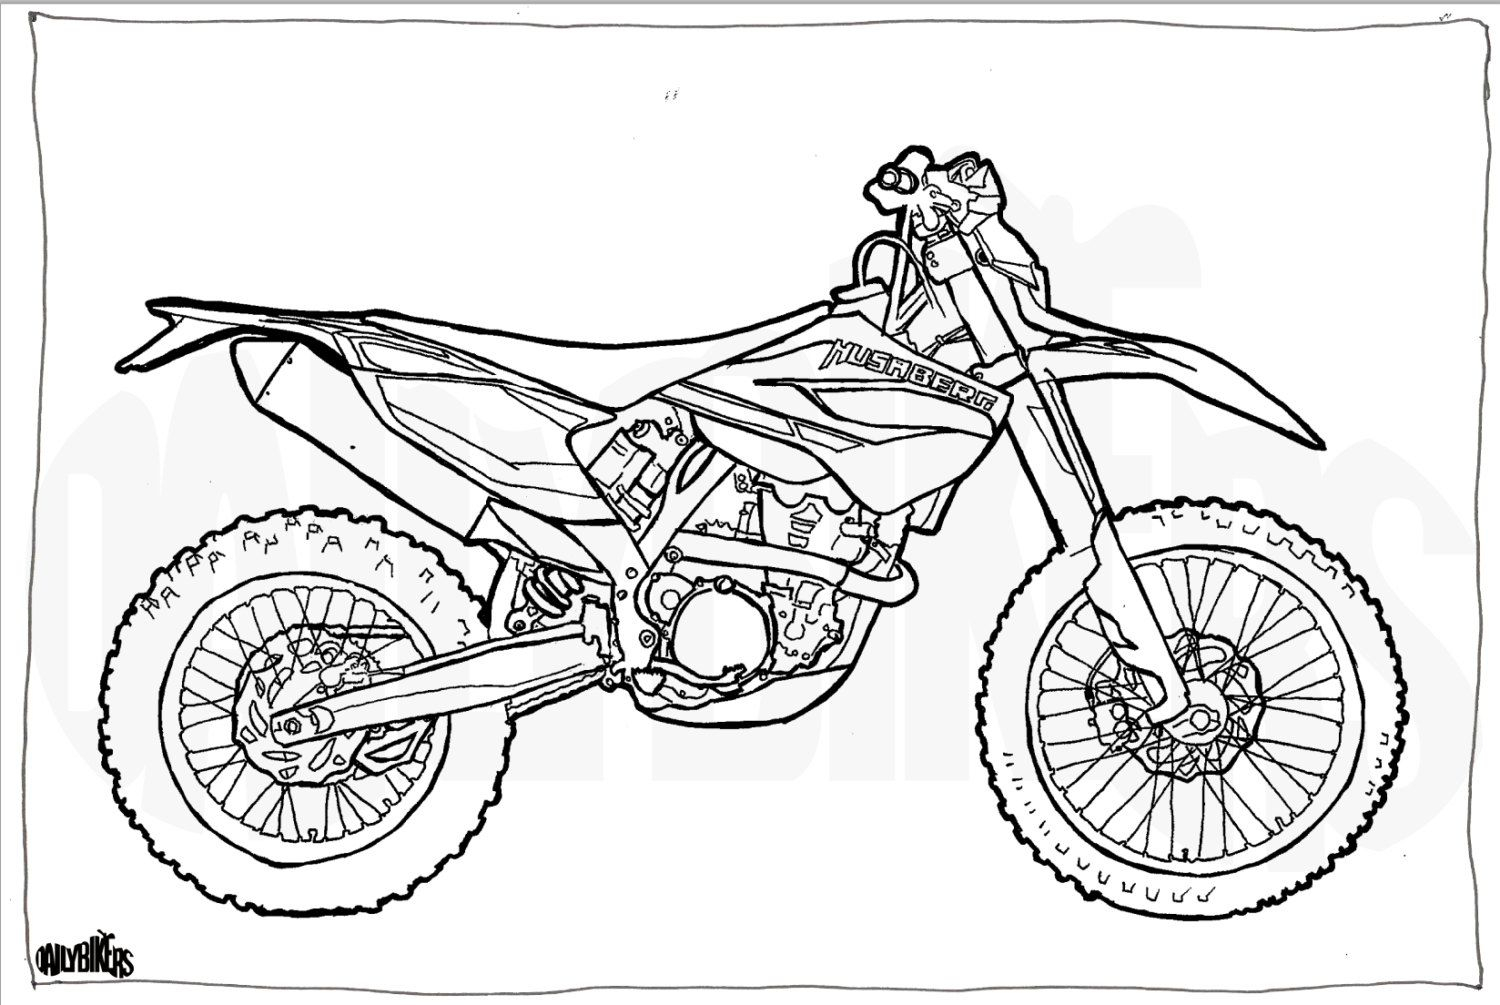 Motorcycle coloring pages coloring pages of motorcycles husaberg te350 motorcycle colouring